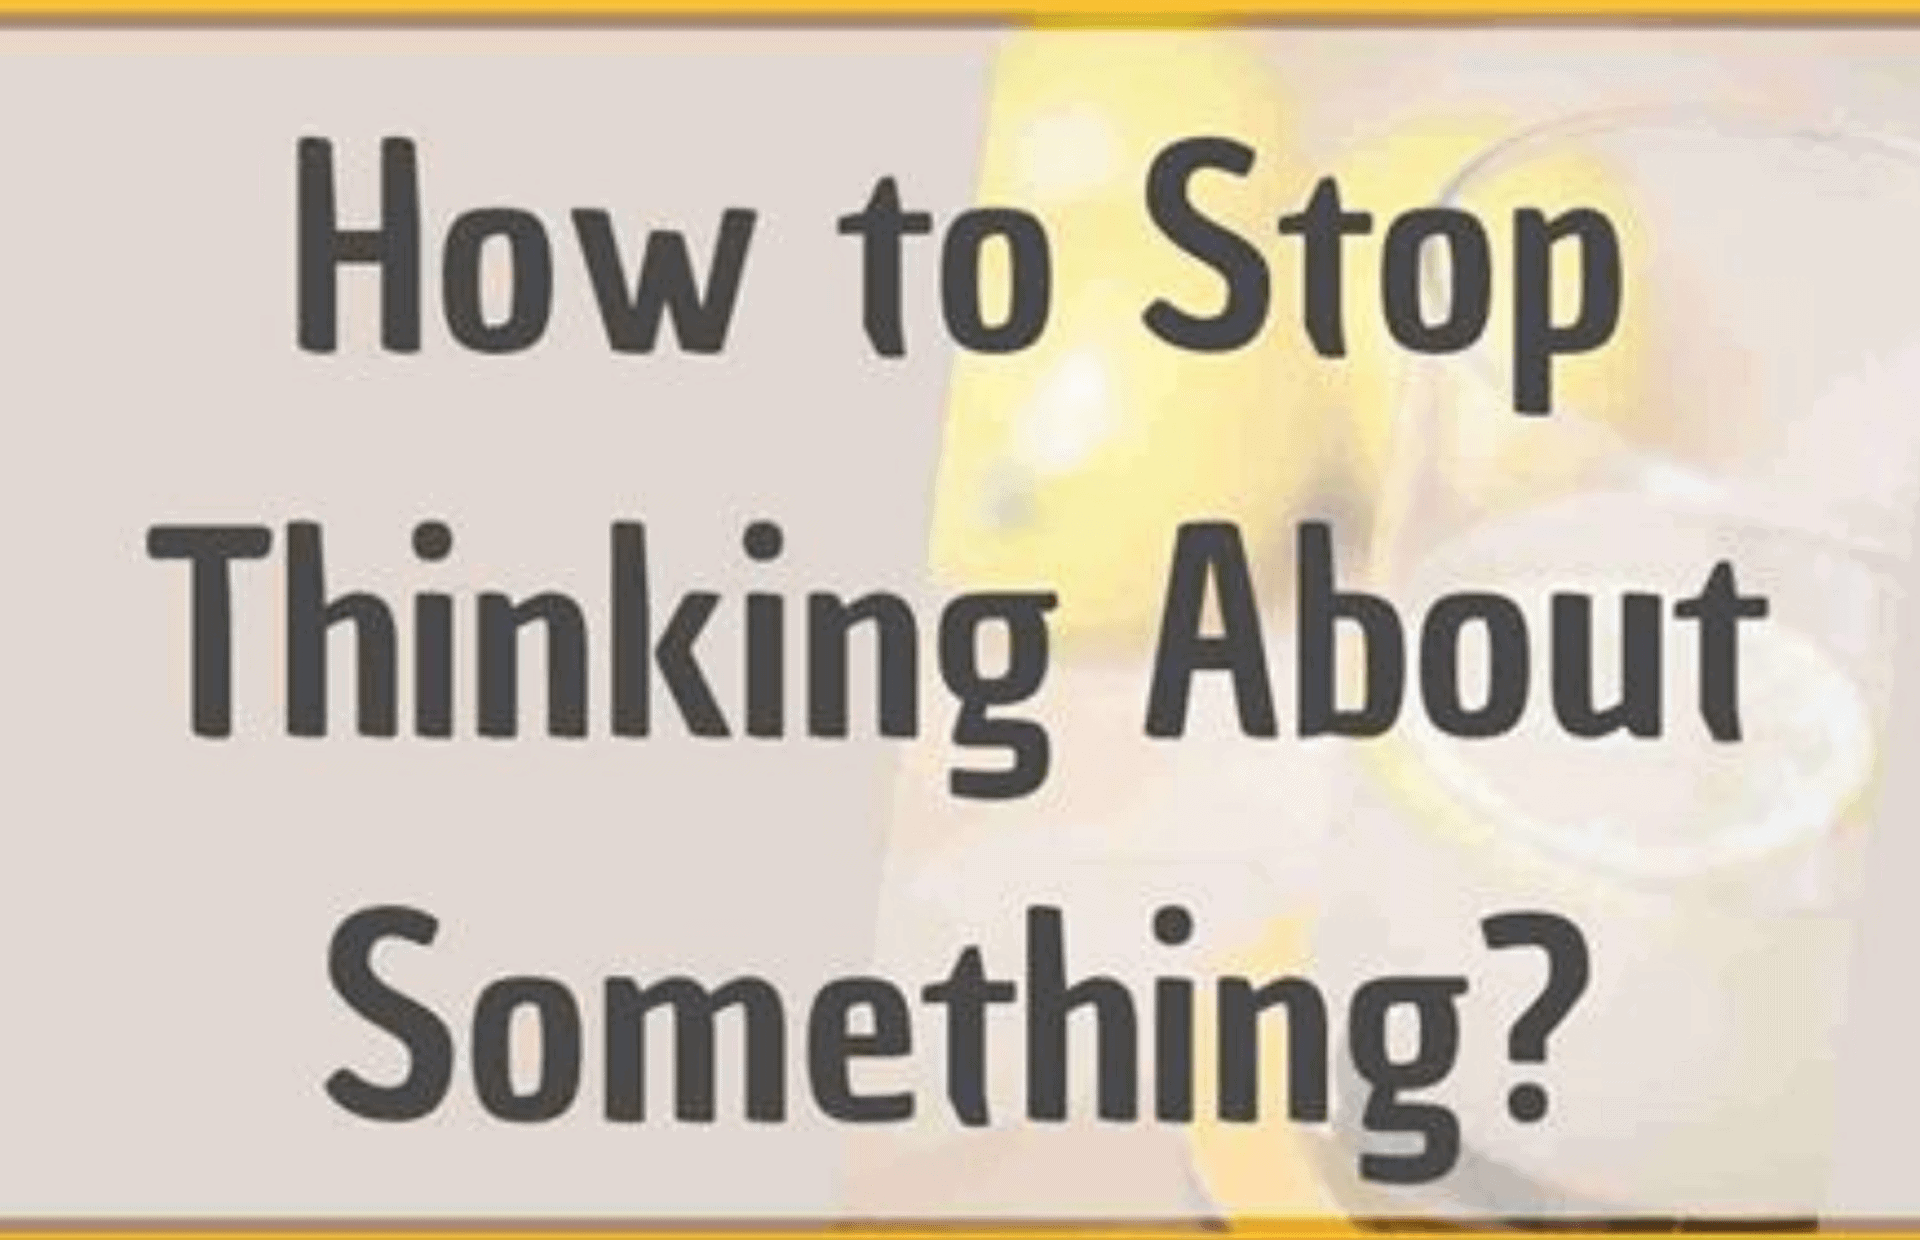 How to Stop Thinking About Something